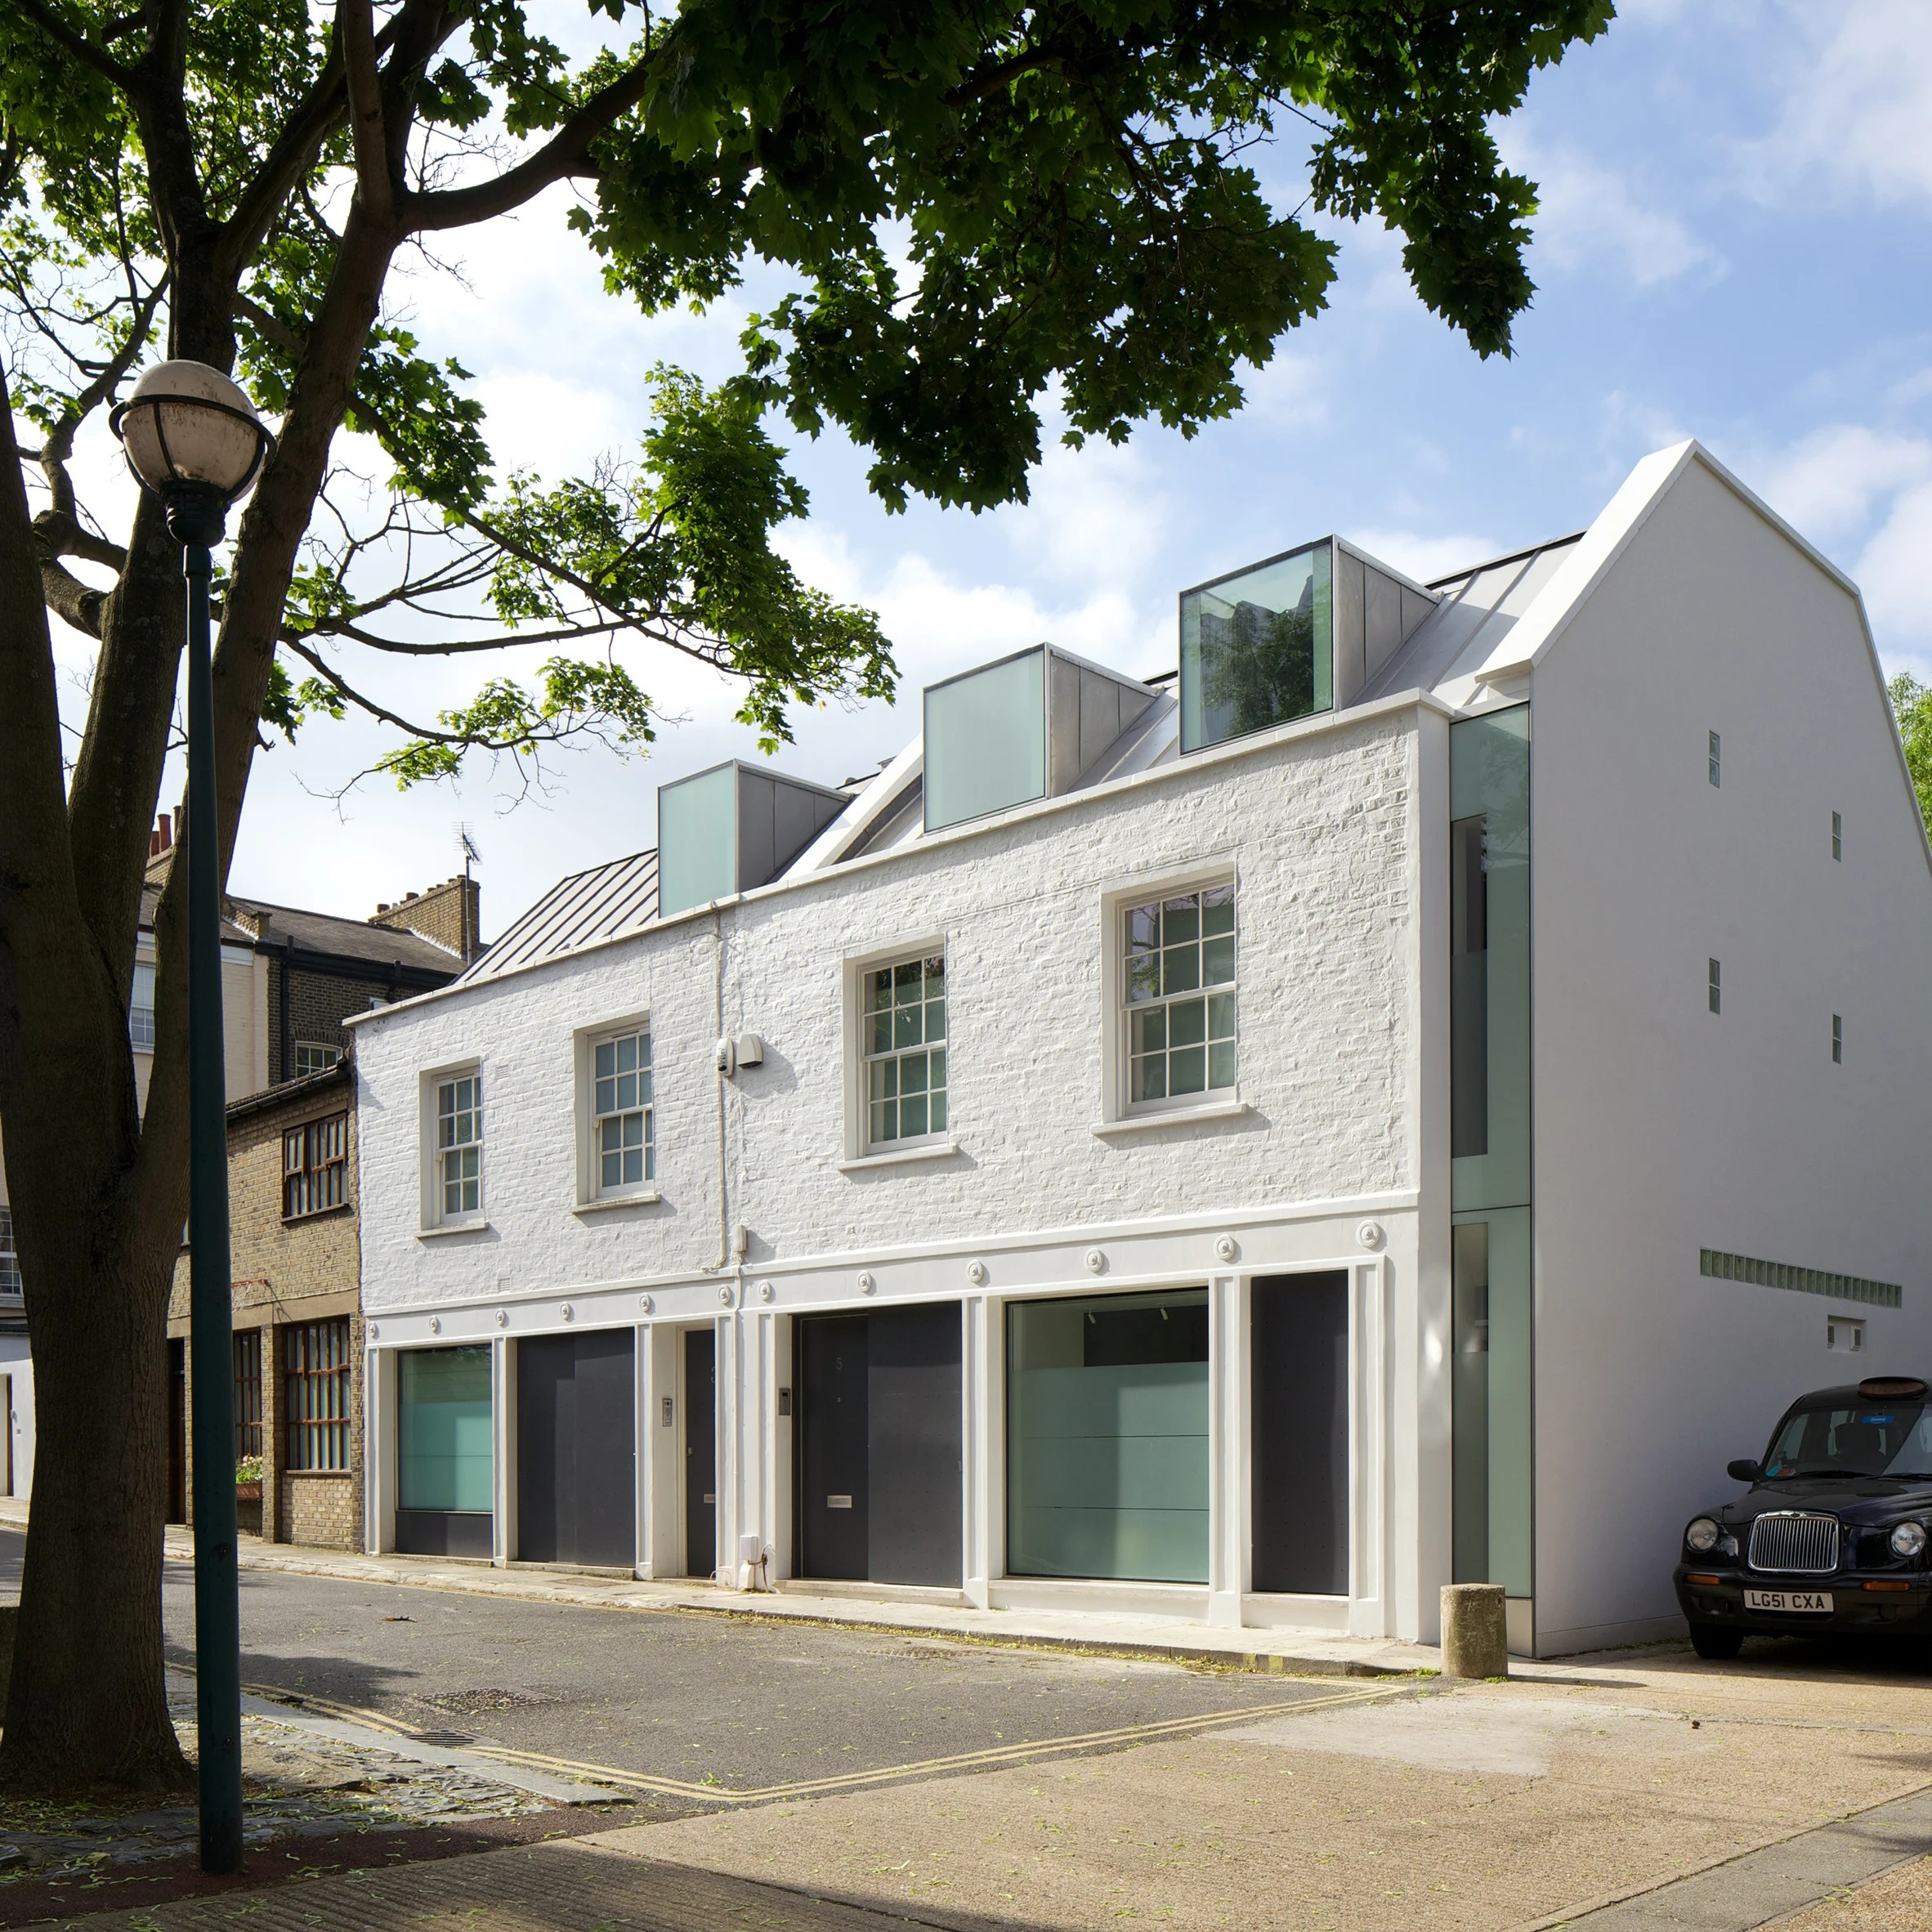 12 London mews houses